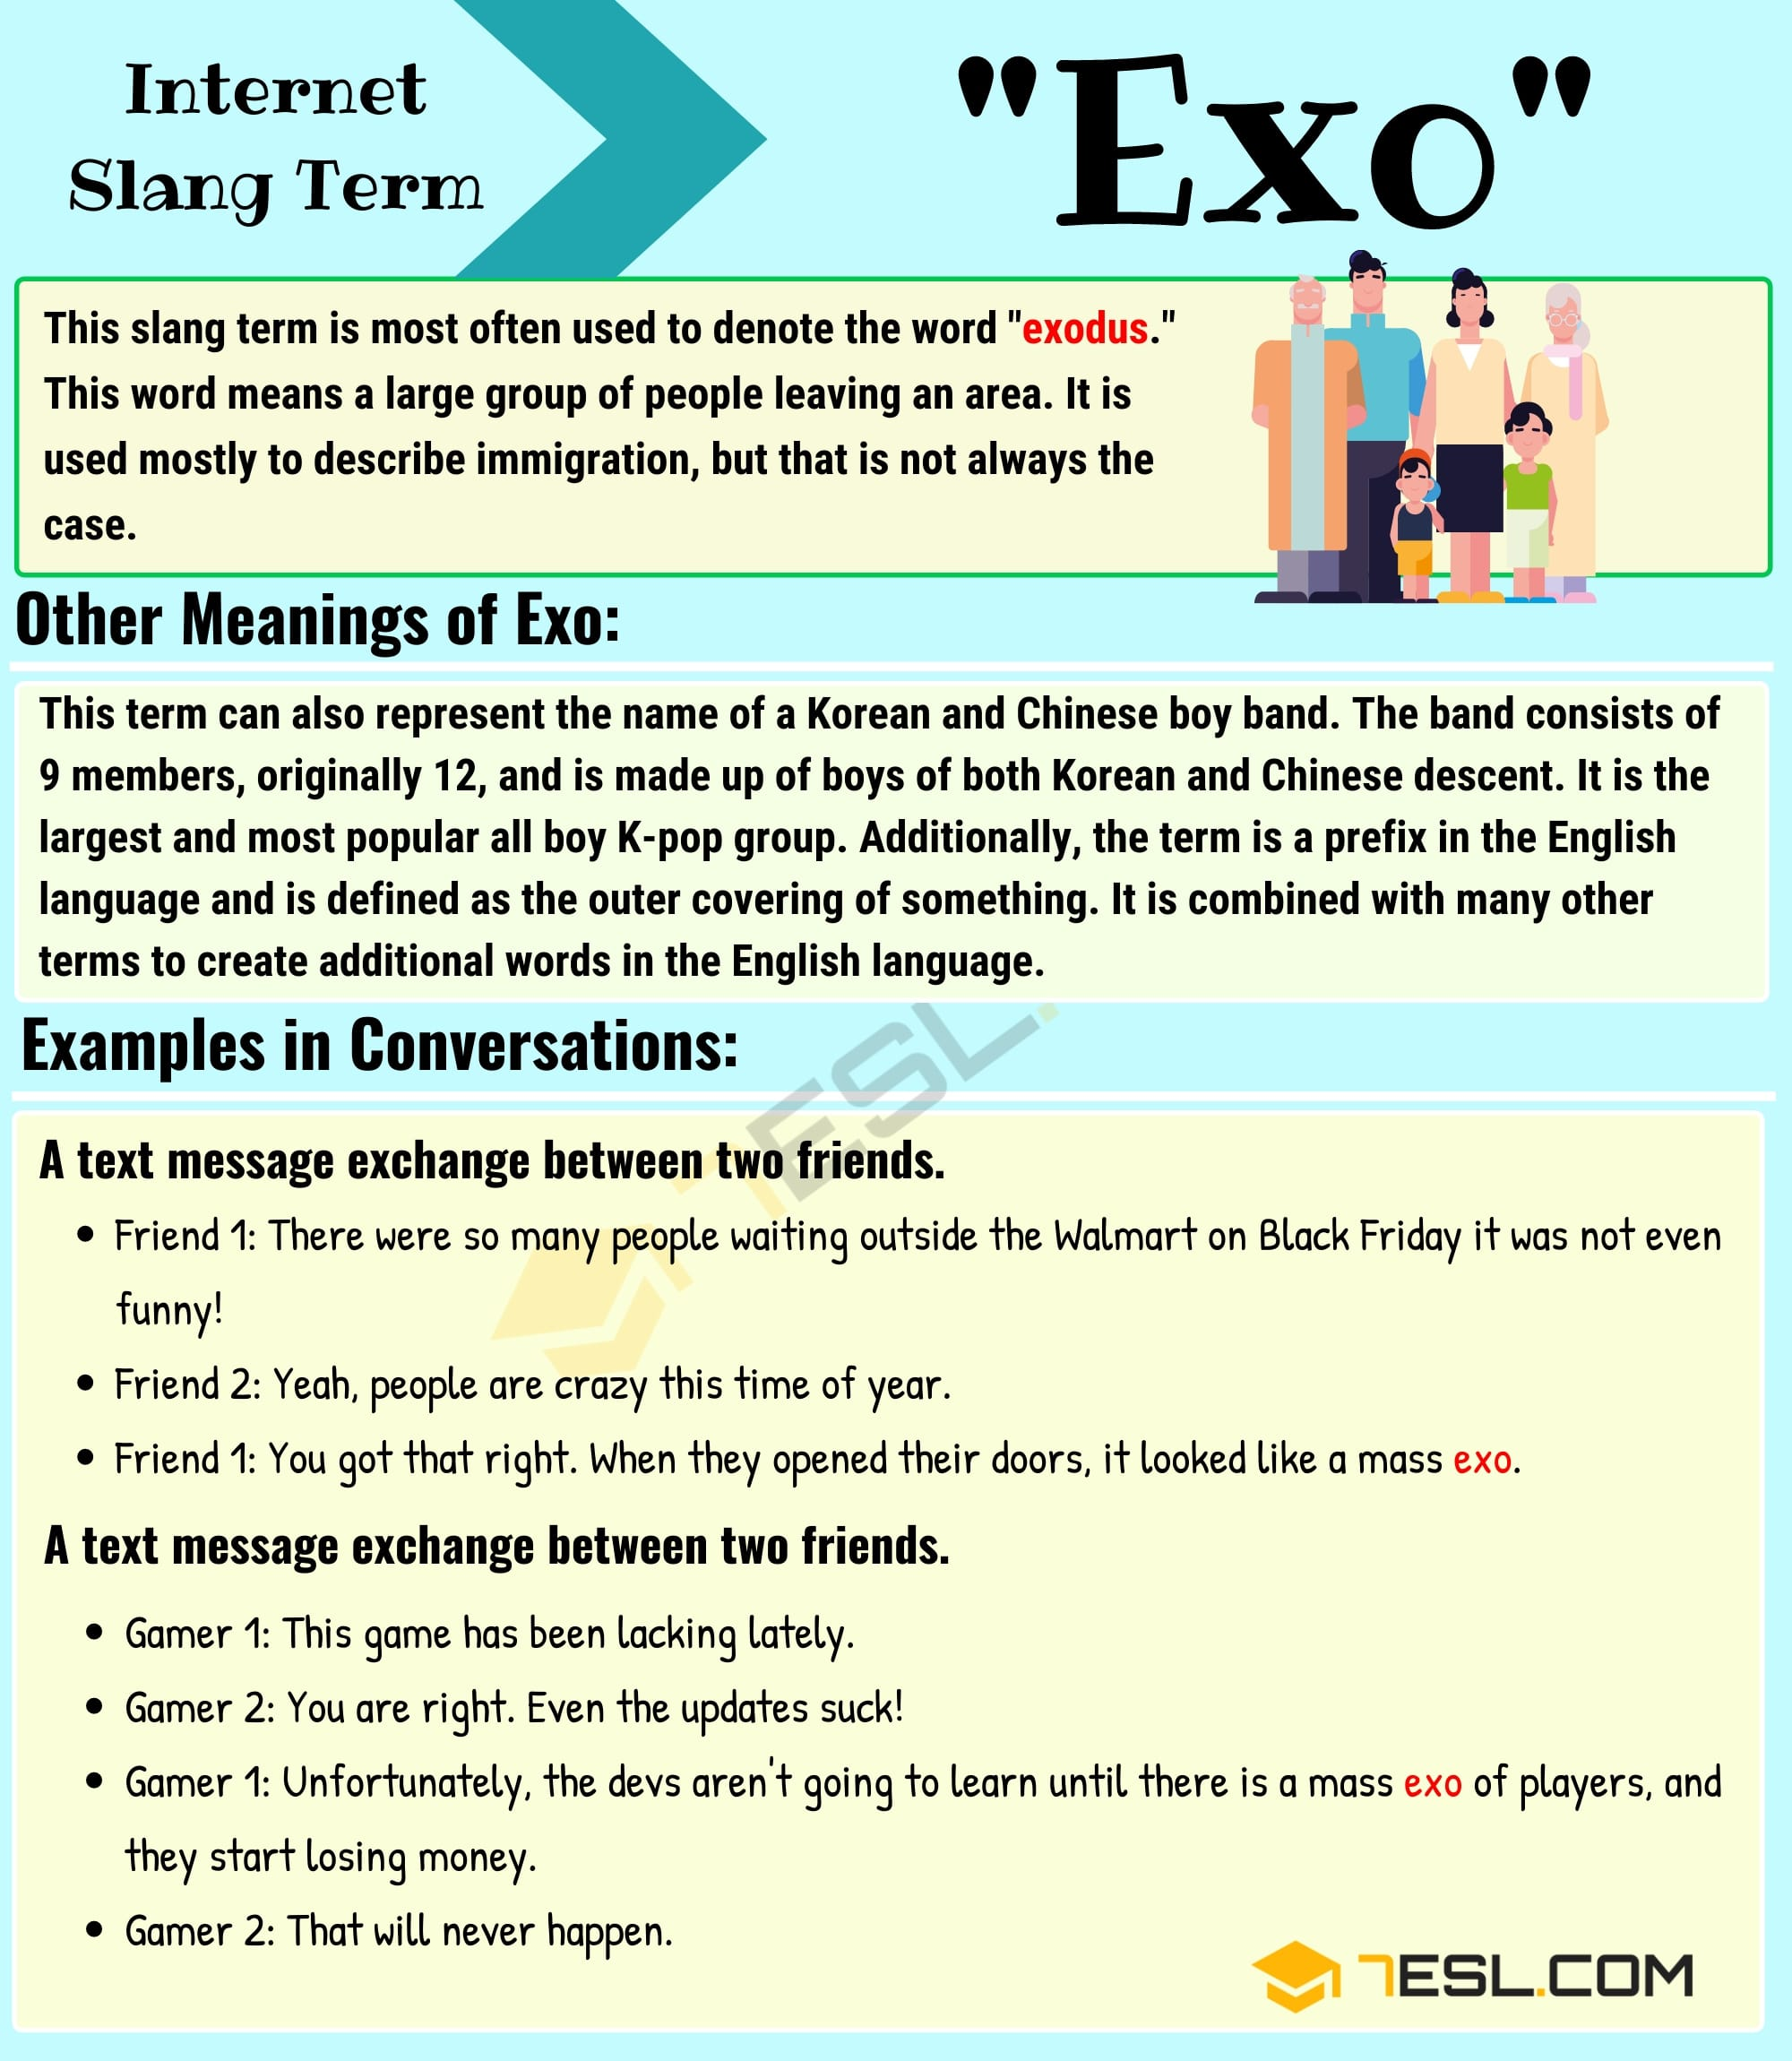 Exo Meaning: What Does the Term EXO Mean and Stand for? 2